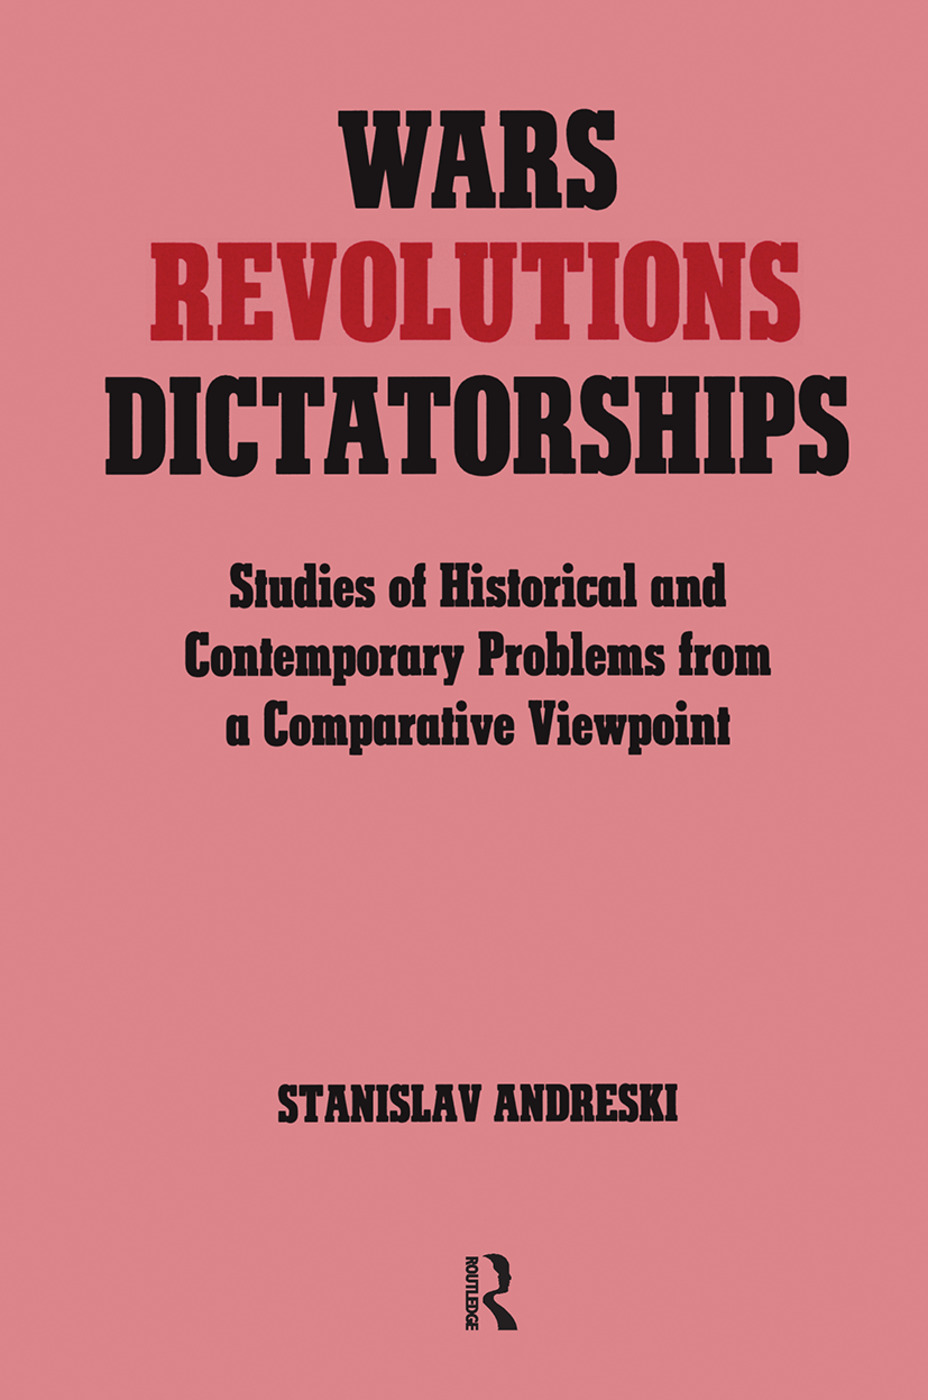 Wars, Revolutions and Dictatorships: Studies of Historical and Contemporary Problems from a Comparative Viewpoint book cover